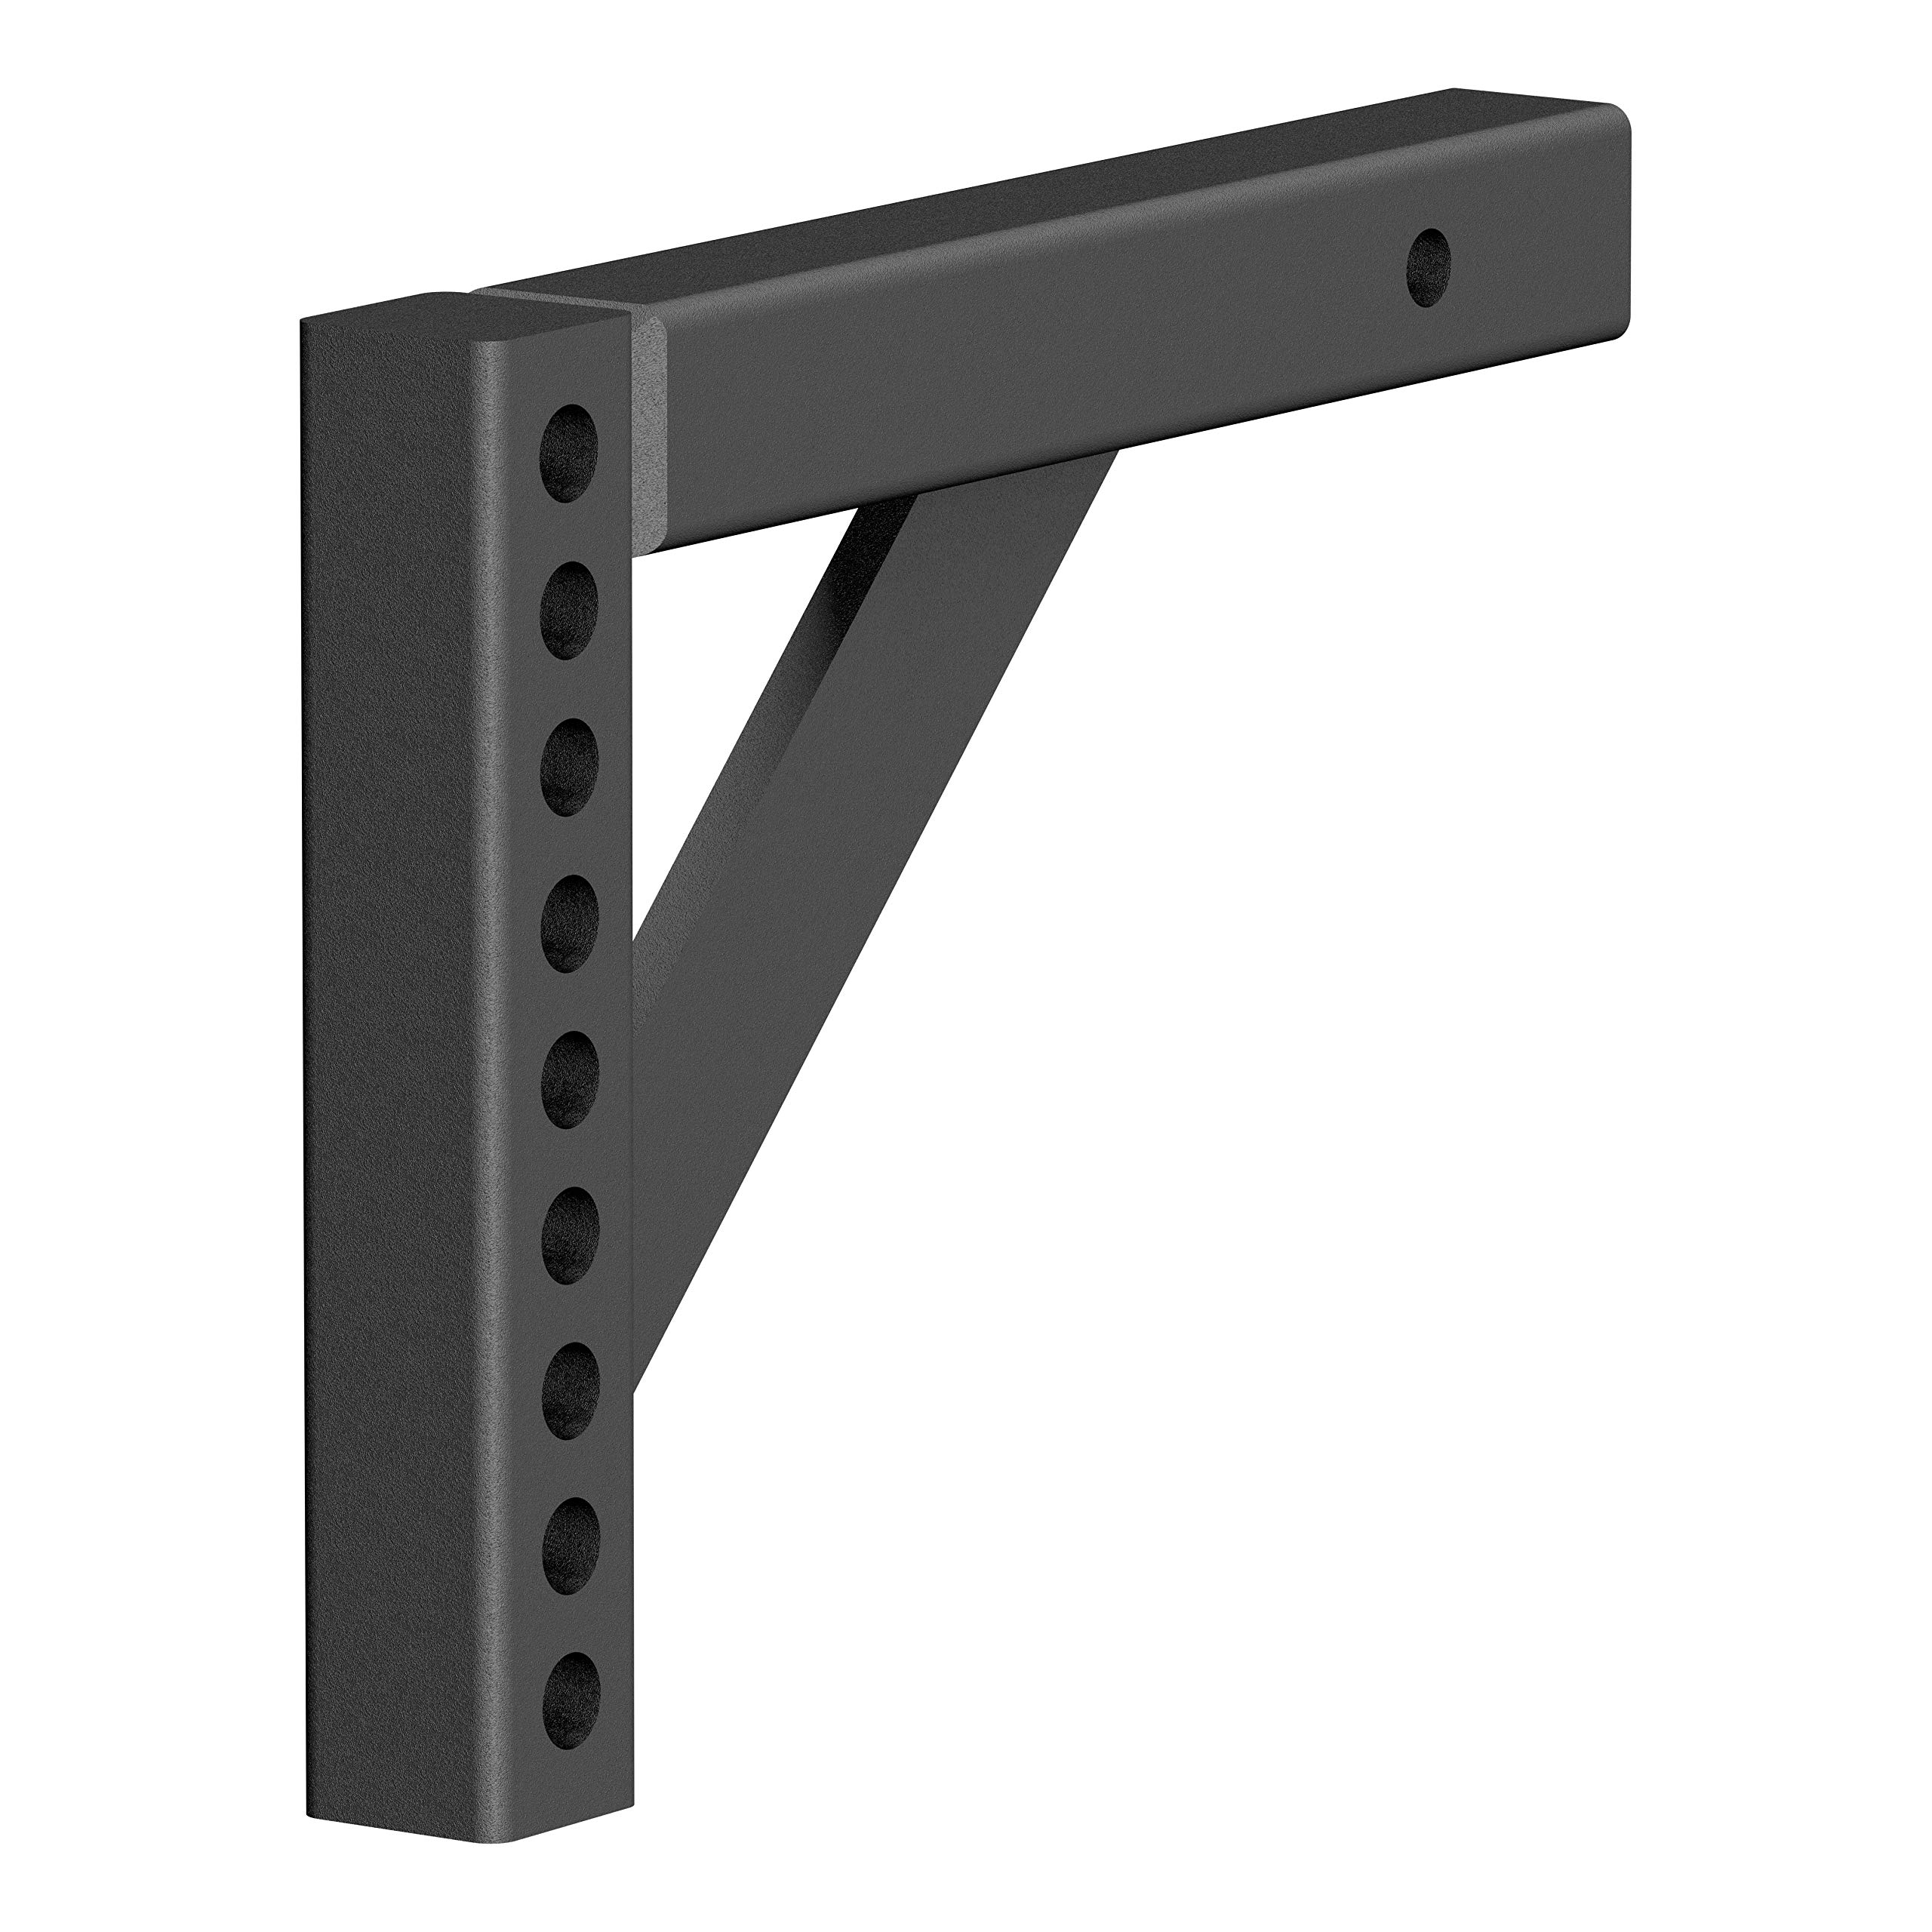 CURT 17121 Replacement Weight Distribution Hitch Shank Black 2 Receiver, 6-Inch Drop, 10-1/4-Inch Rise by CURT